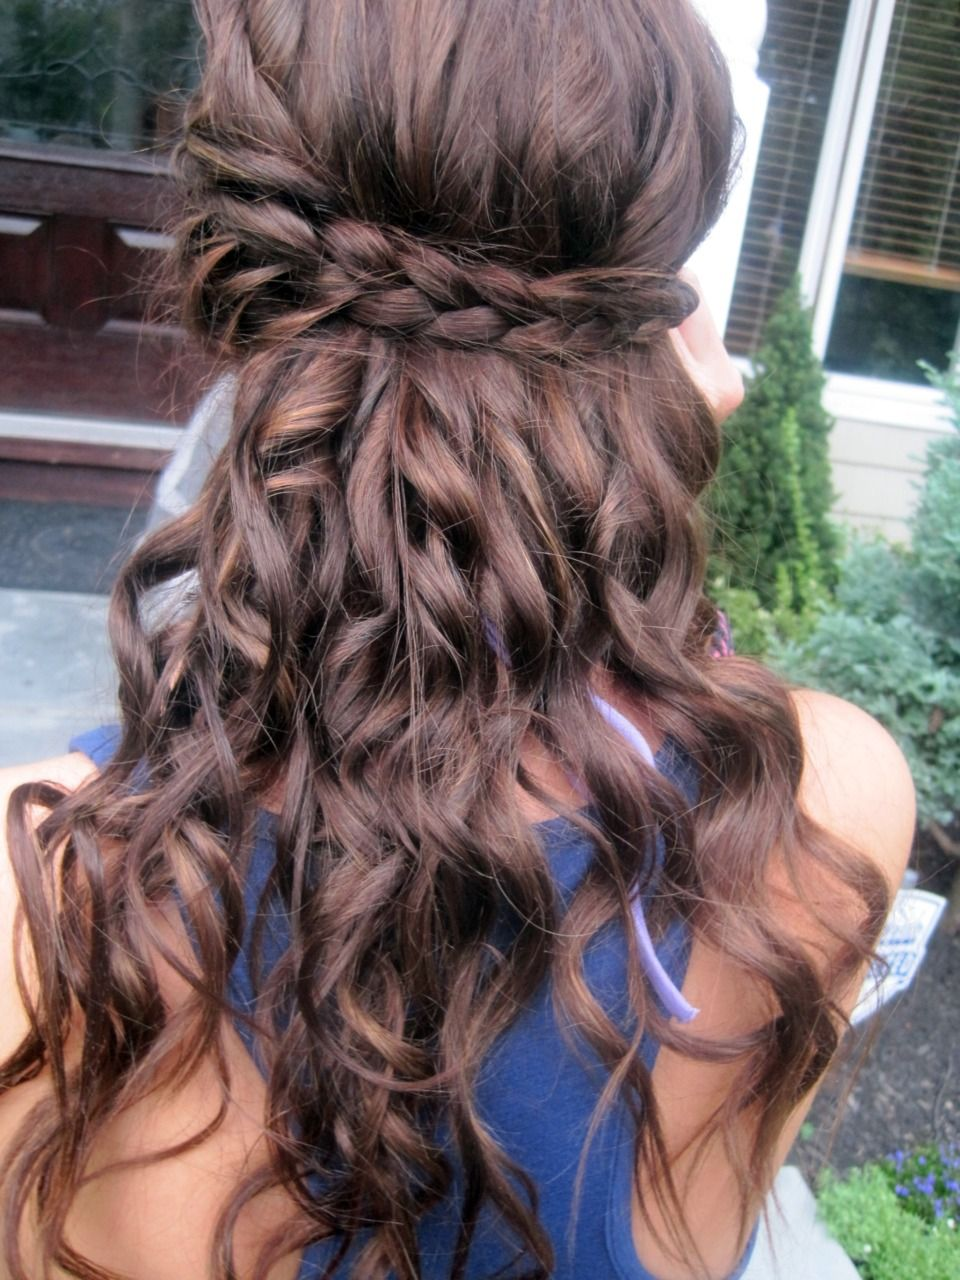 Pin by colbey garrison on my style pinterest pretty hair hair